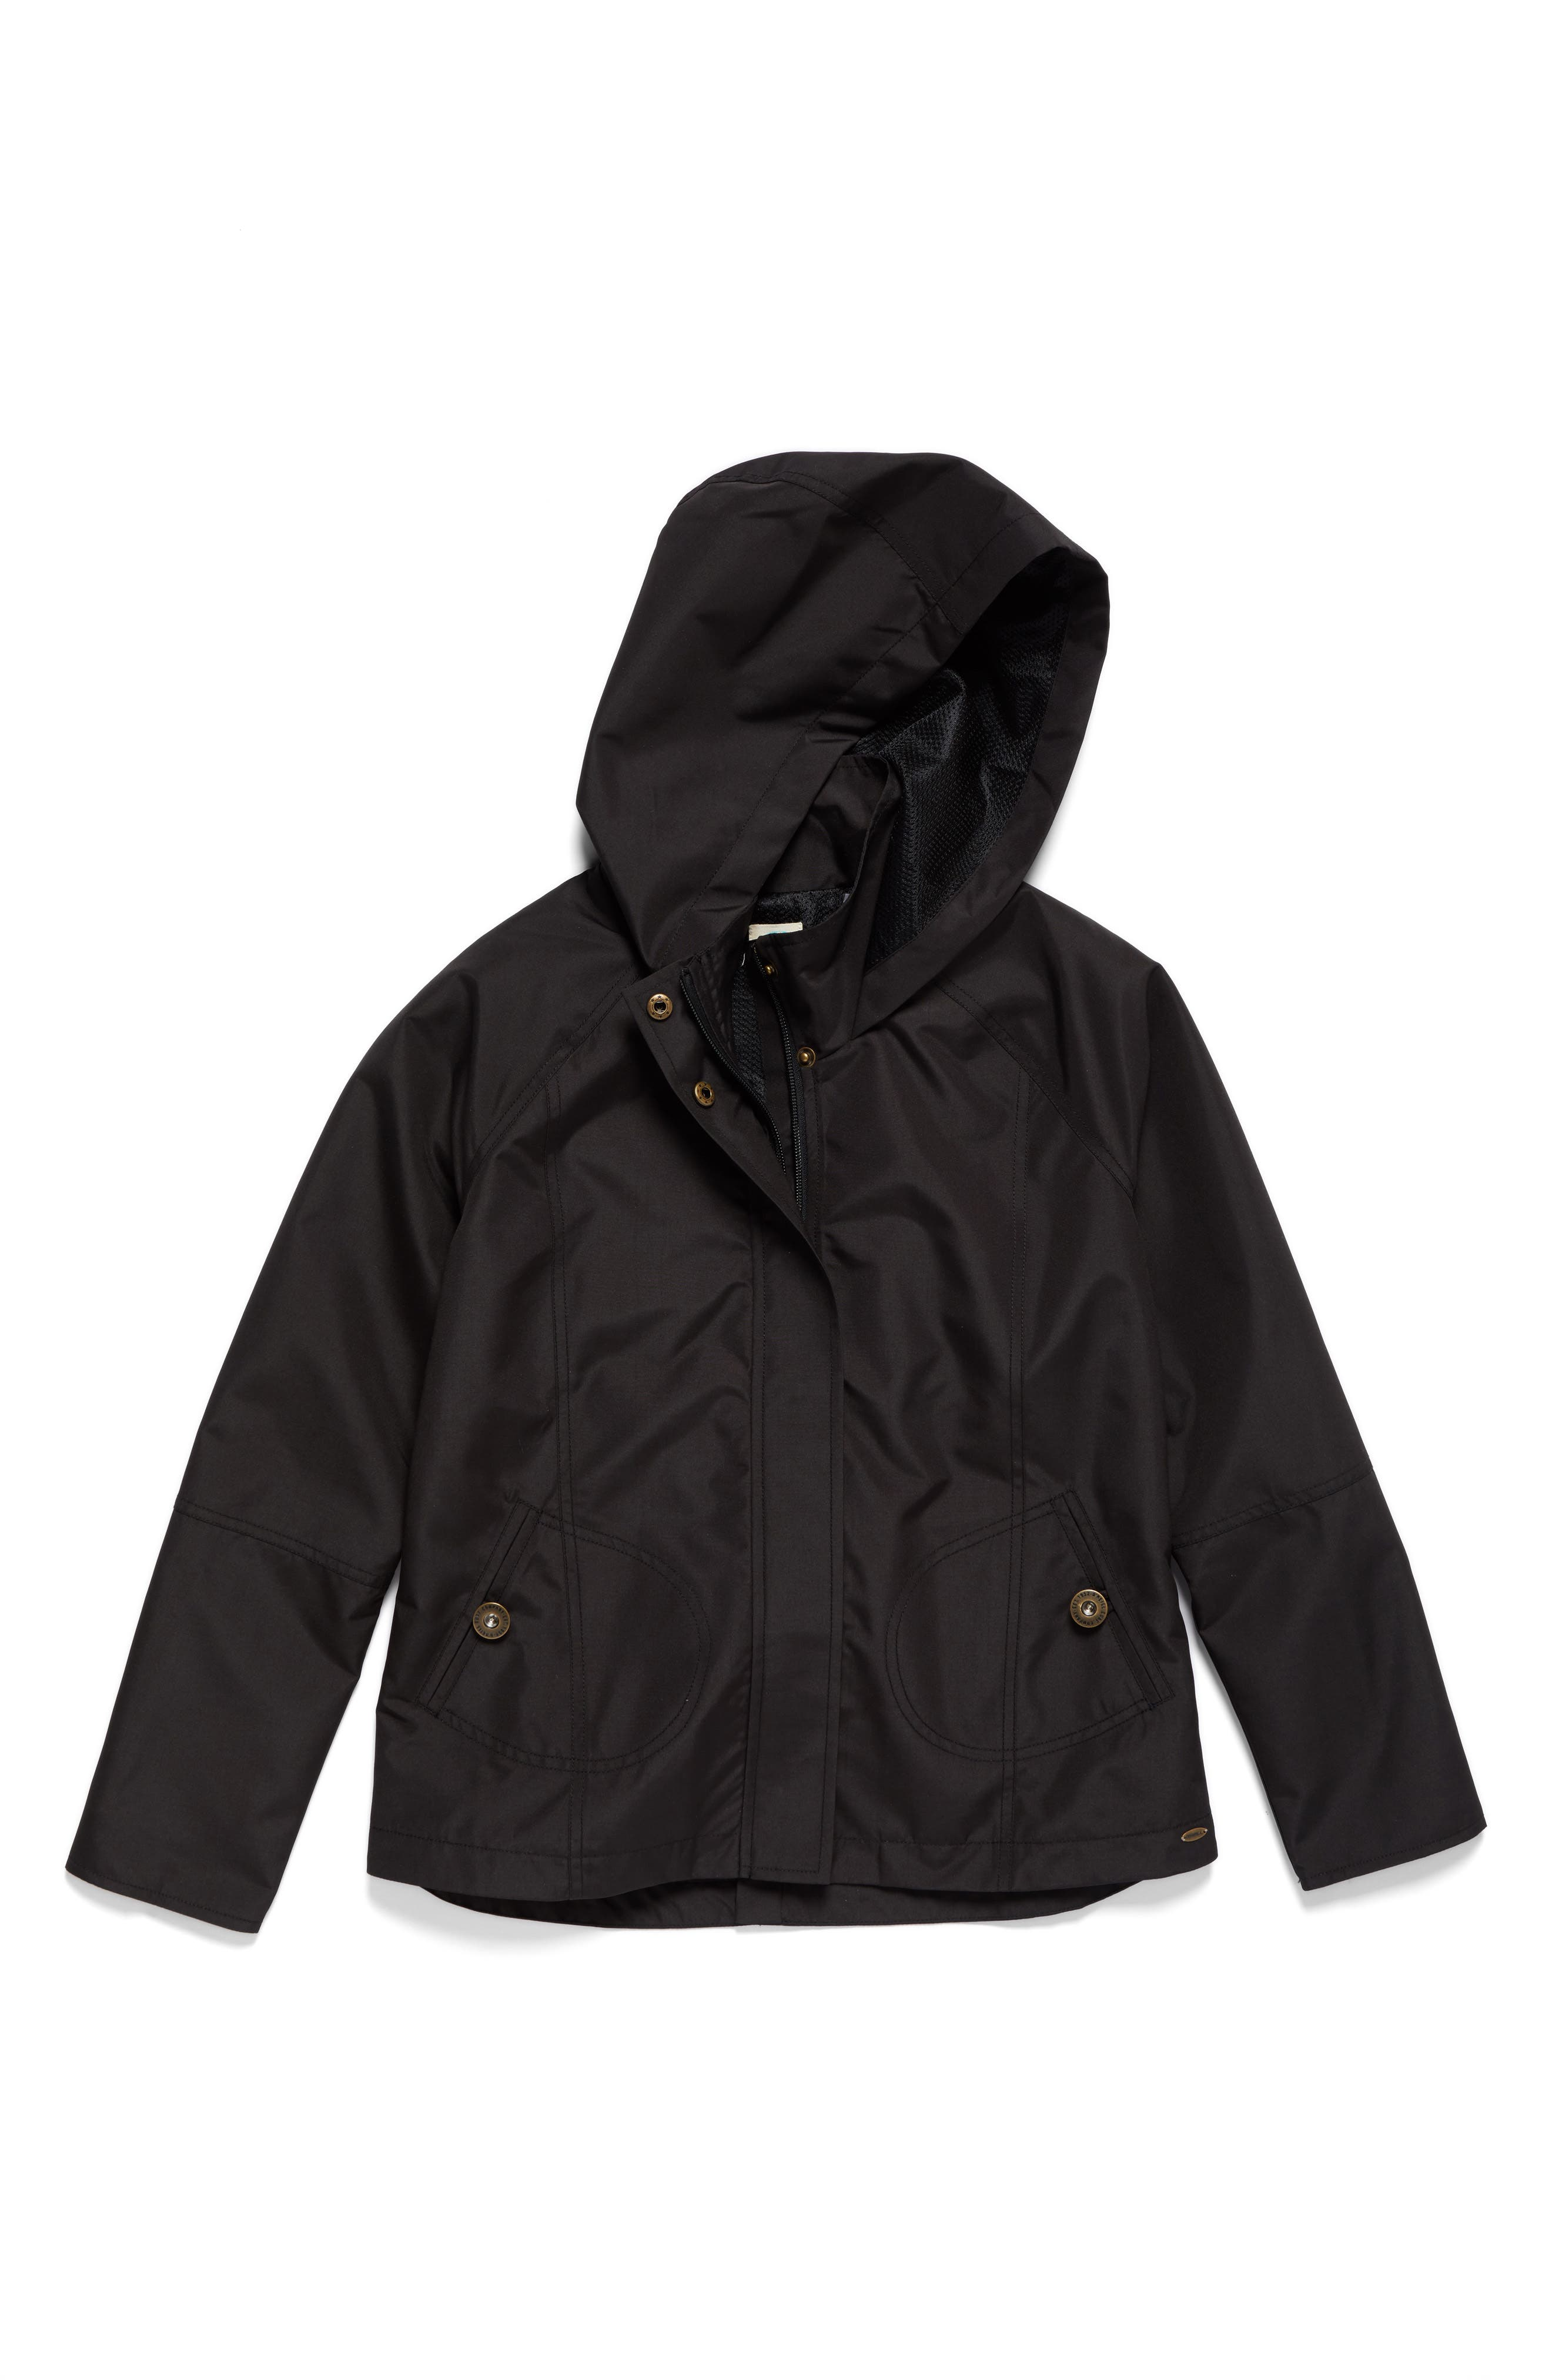 O'NEILL Windy Water Resistant Hooded Jacket, Main, color, BLACK